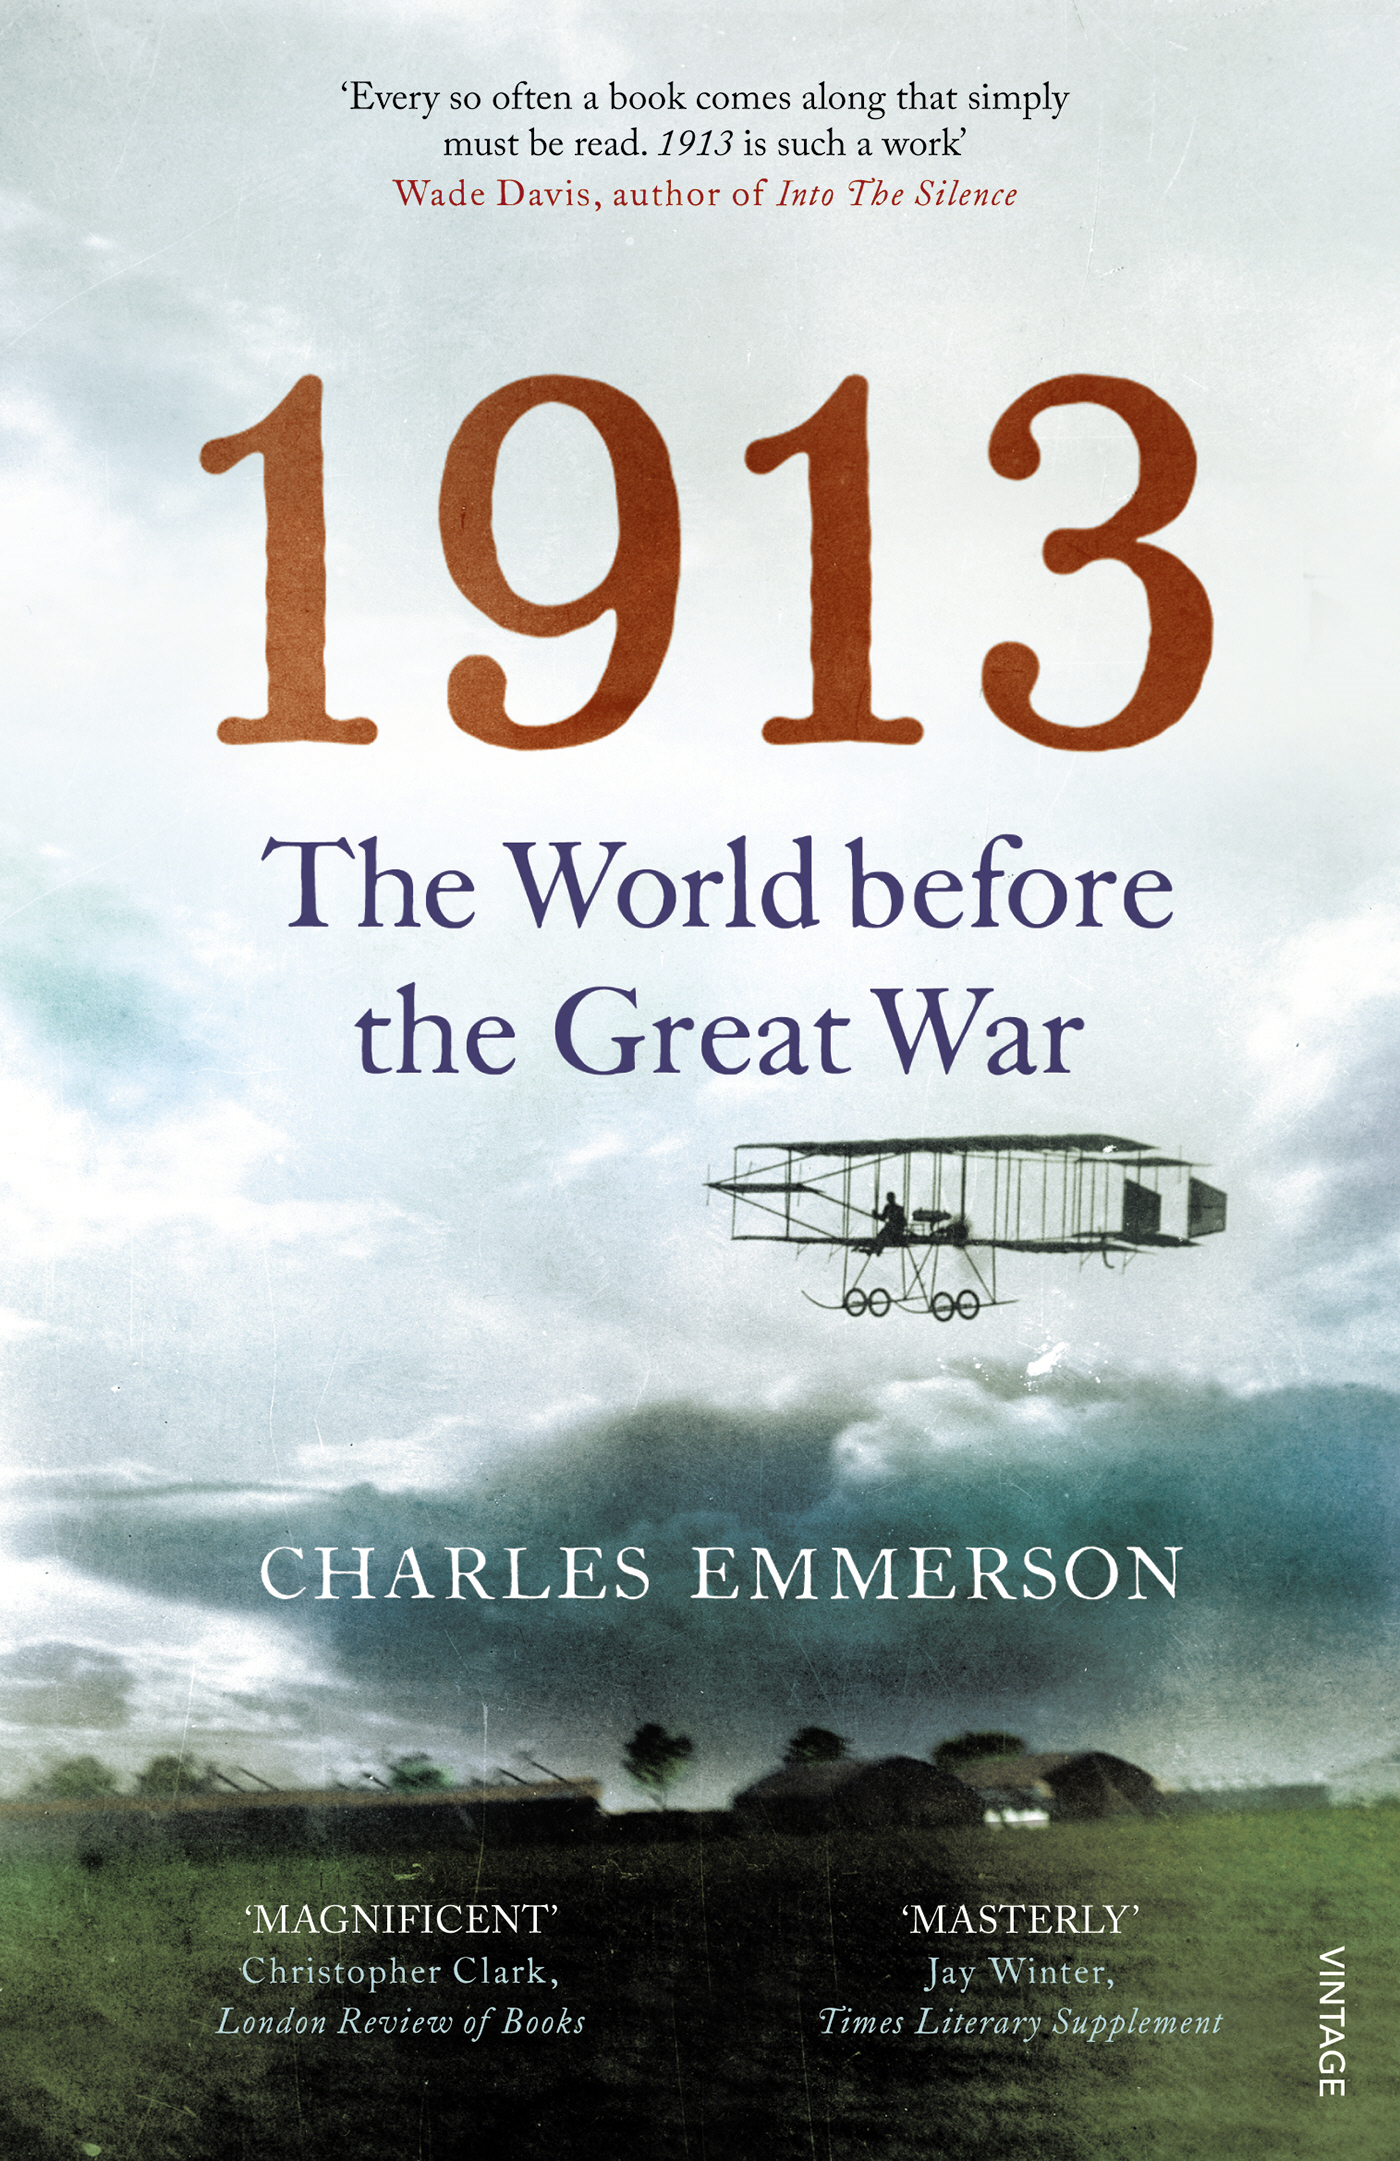 1913 The World before the Great War